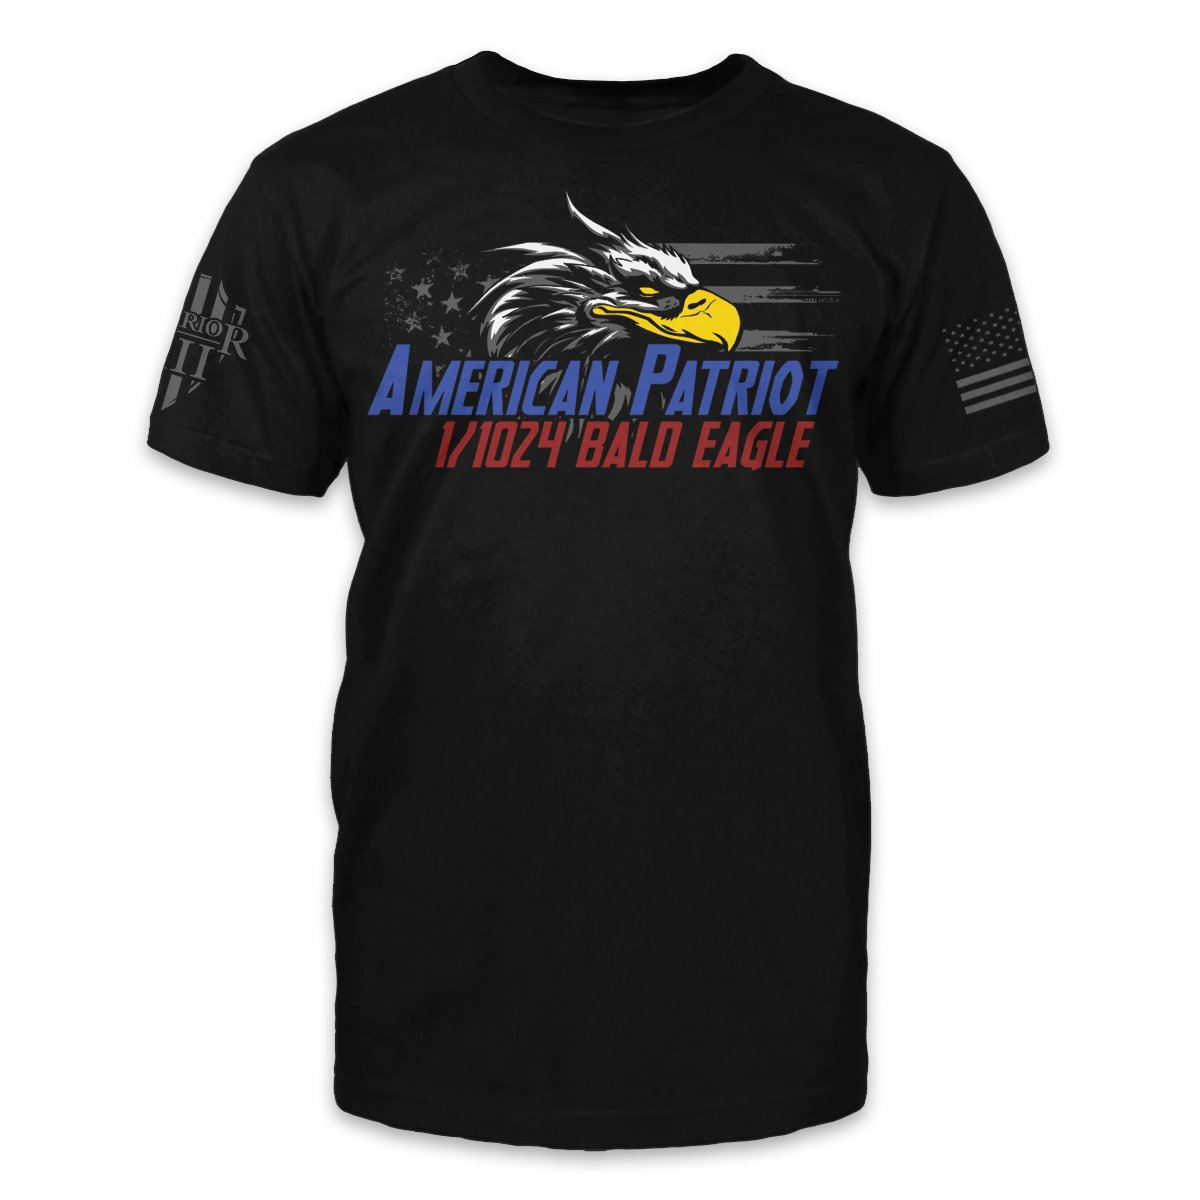 1/1024 Bald Eagle Shirt